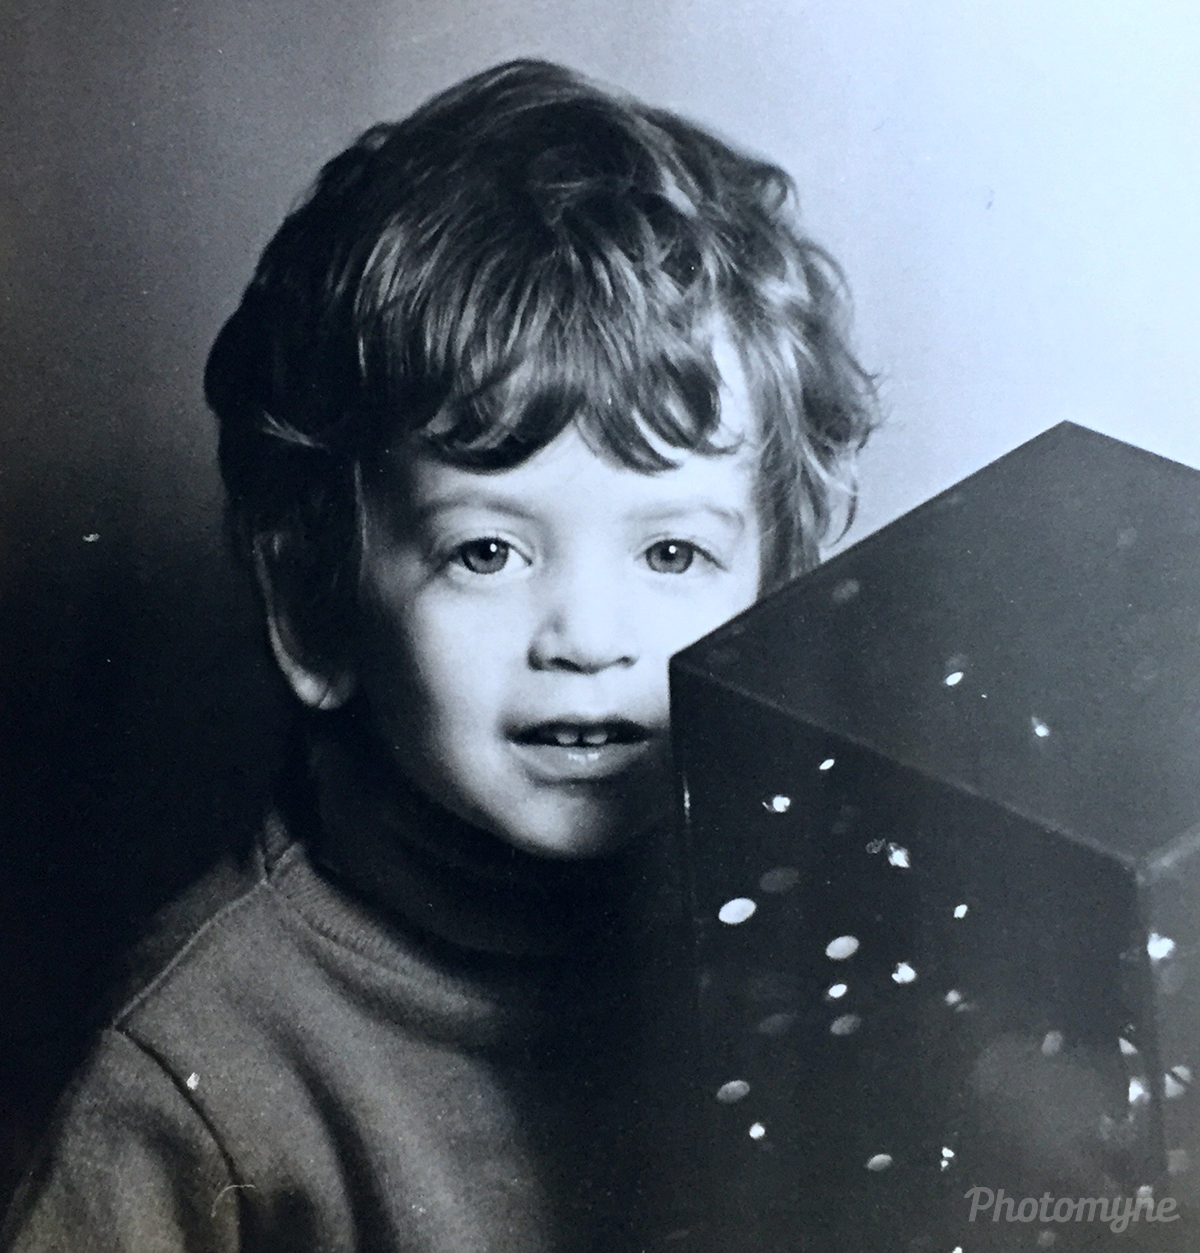 Me at age 3 in front of some modern art. Philadelphia, USA 1970